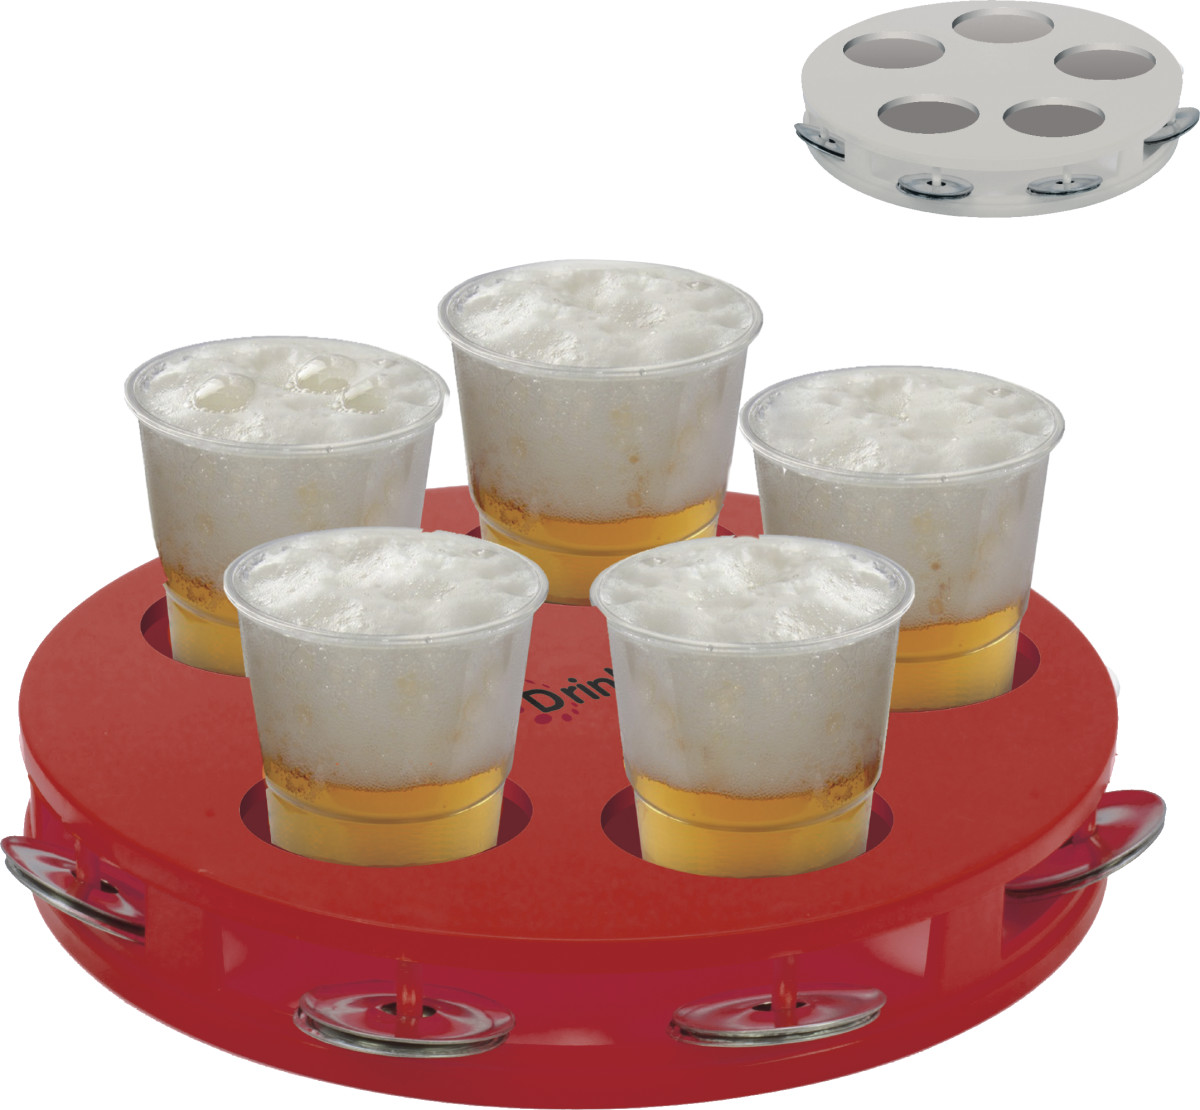 Biertray bedrukken